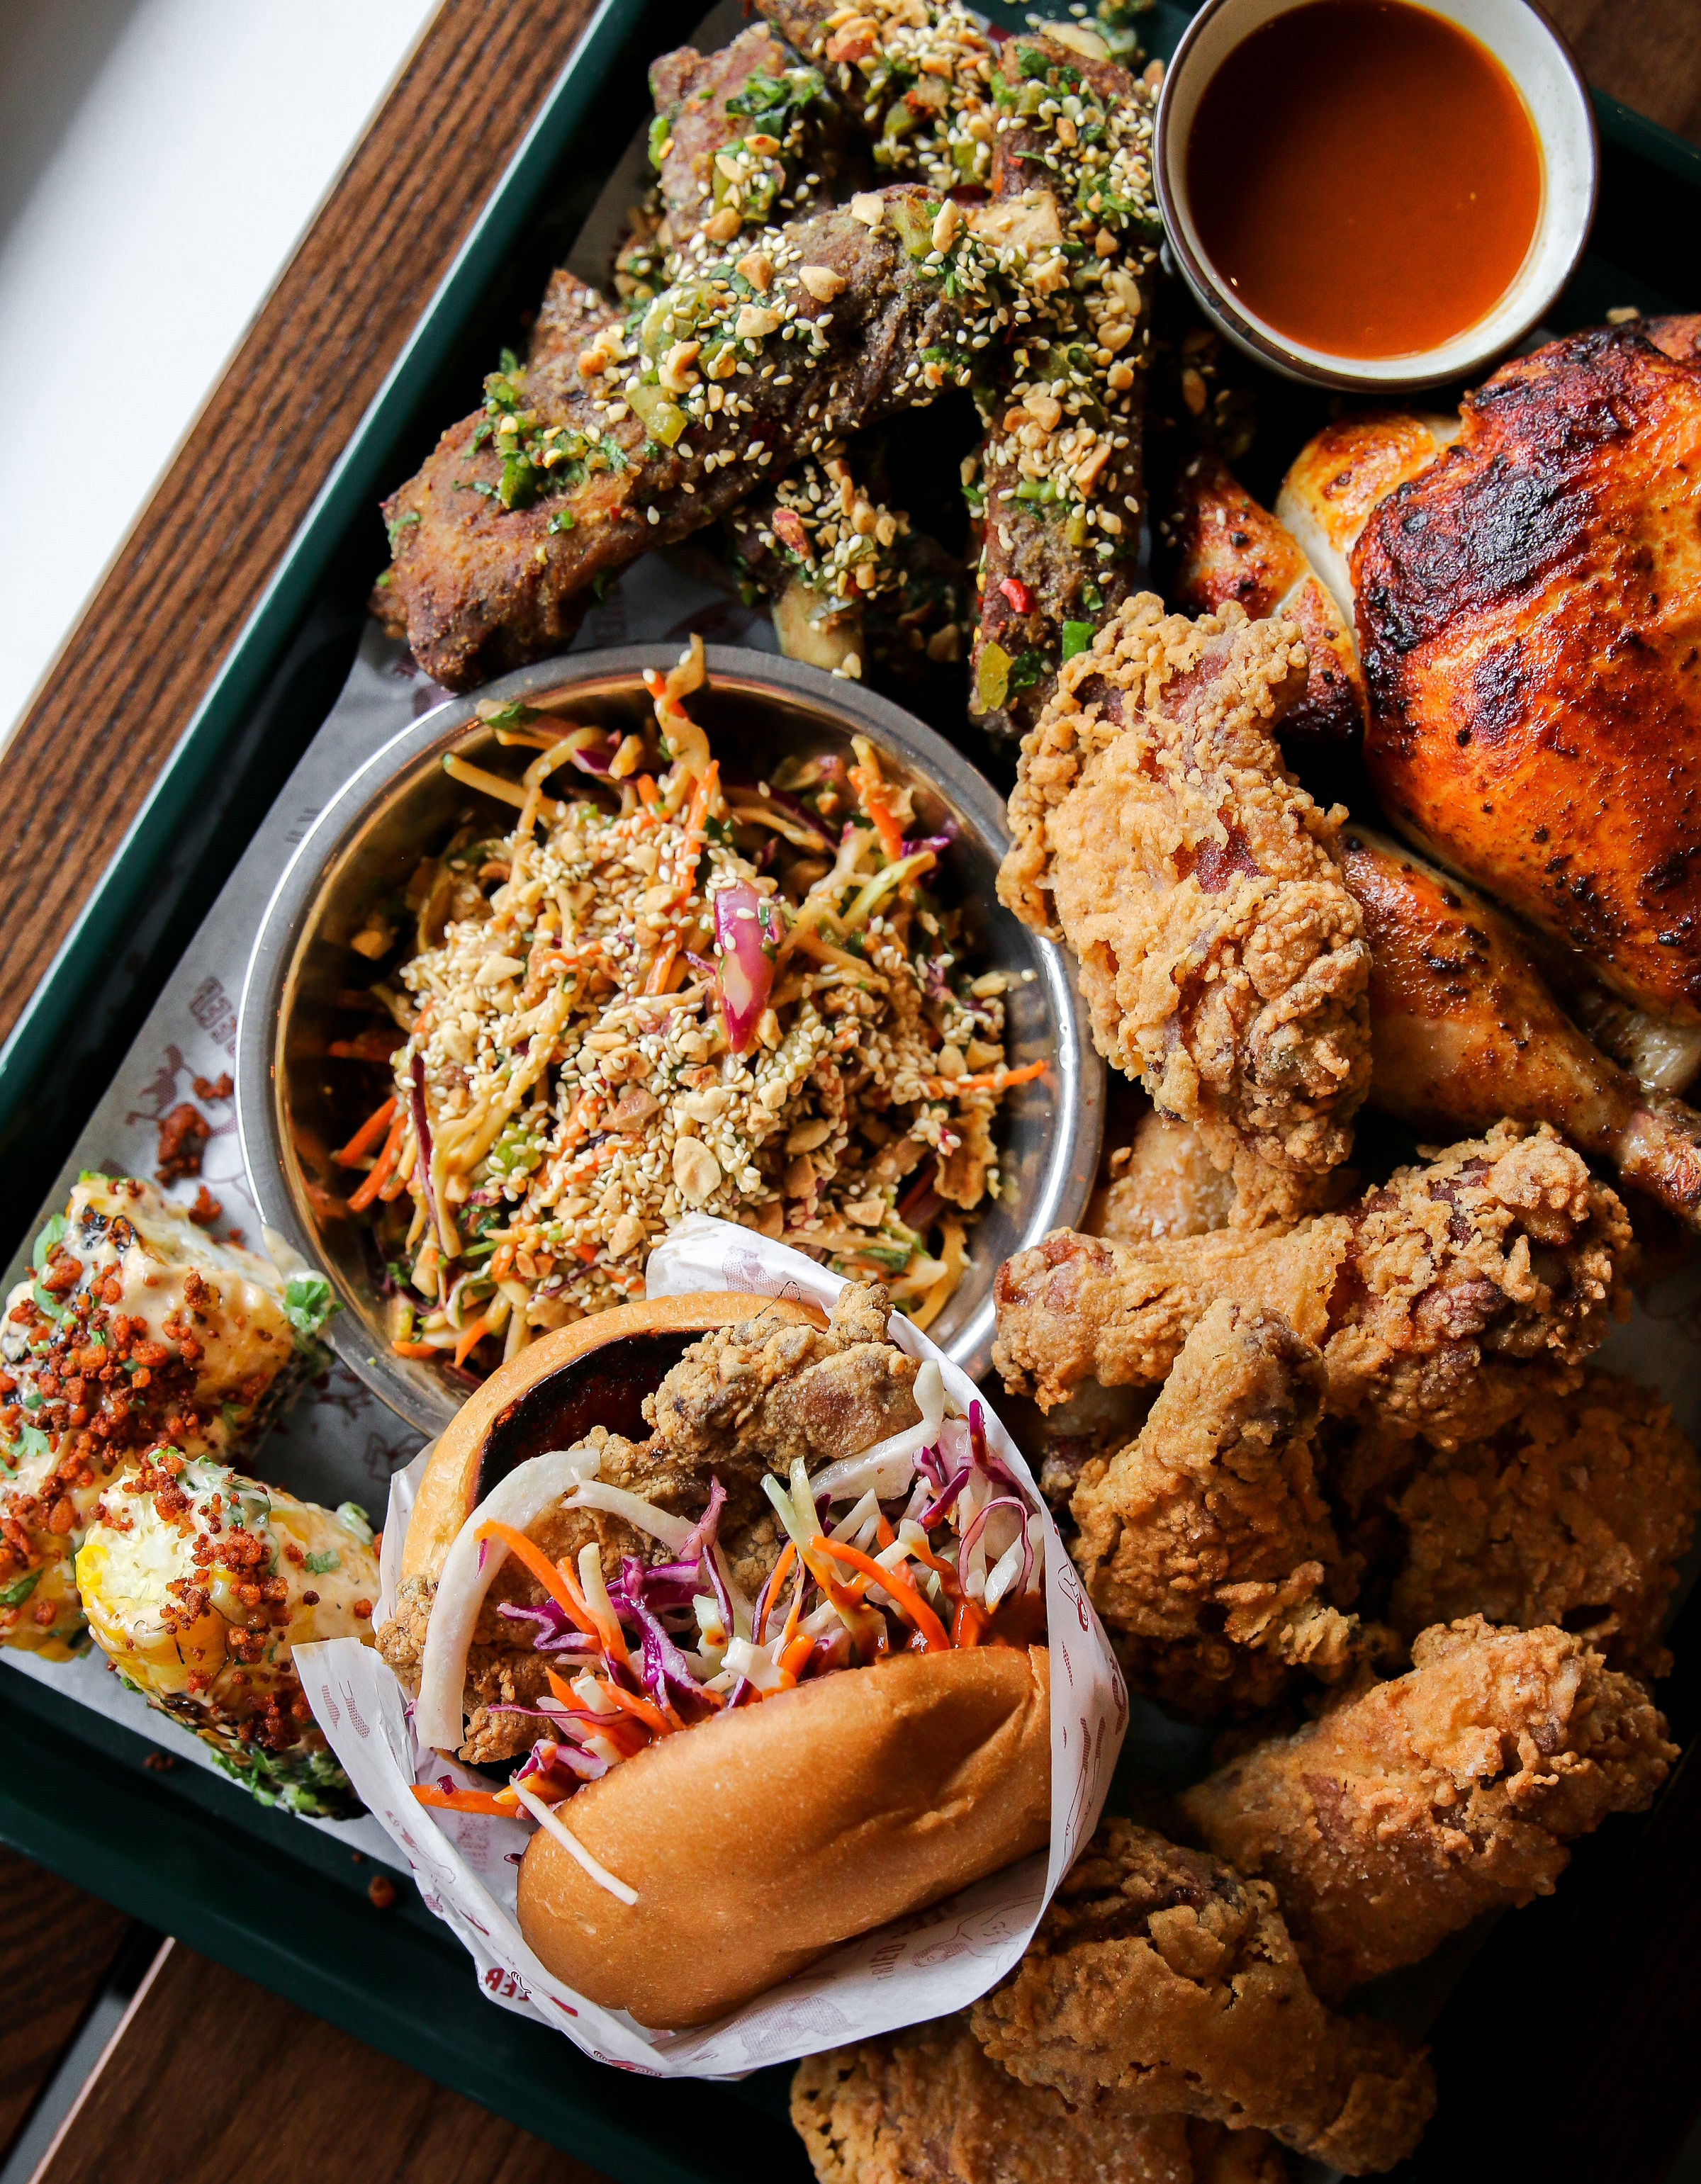 JUKE FRIED CHICKEN'S NEW OUTPOST, 'LITTLE JUKE', OPENS IN ThE WEST END - August 27, 2018Juke Fried Chicken will rule the roost in a new neighbourhood when the popular fried-chicken-and-rib joint officially opens its second location — a.k.a. 'Little Juke' — in the heart of Vancouver's West End neighbourhood at 1074 Davie Street on August 29.Serving up Juke's trademark gluten-free, non-GMO-grain-fed and free-range regular and spicy fried chicken available in various drums-and-thighs sizes, Little Juke will also offer new menu items including quarter, half or whole rotisserie chickens, Vietnamese-inspired nuoc cham ribs, 'Big Boy' fried chicken sandwiches, and sides like mac & cheese poppers and roast potatoes, as well as weekend brunch options on Saturday and Sunday.